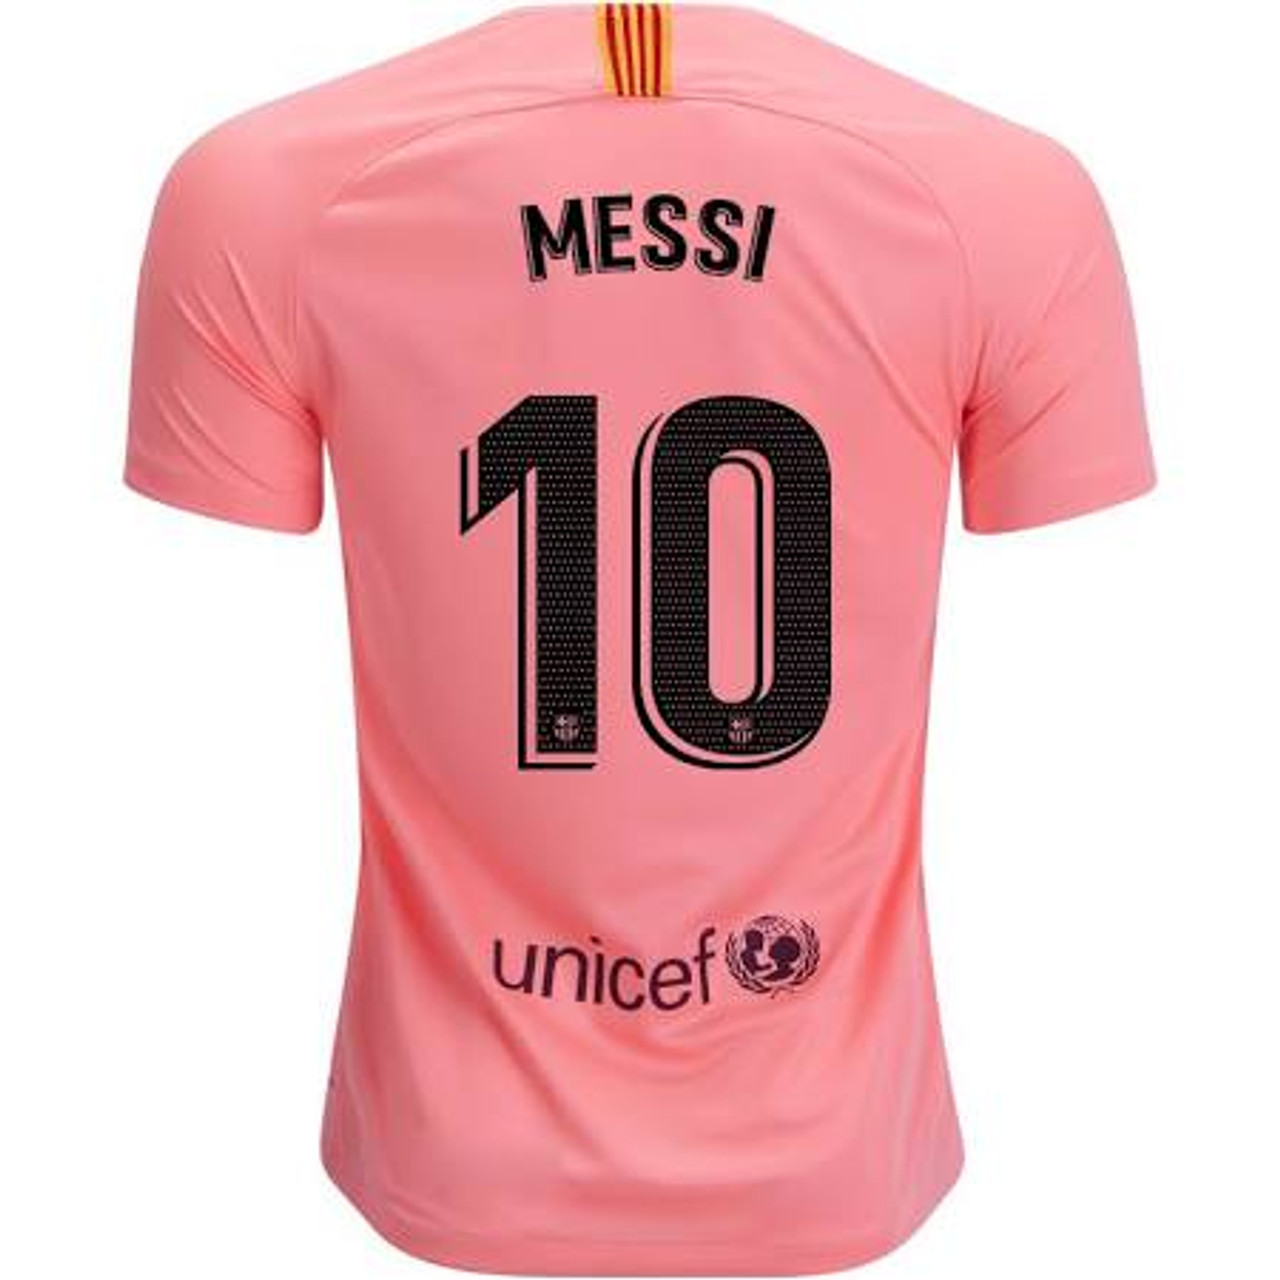 performance sportswear meet new specials NIKE BARCELONA BOYS 2019 MESSI 3RD JERSEY PINK